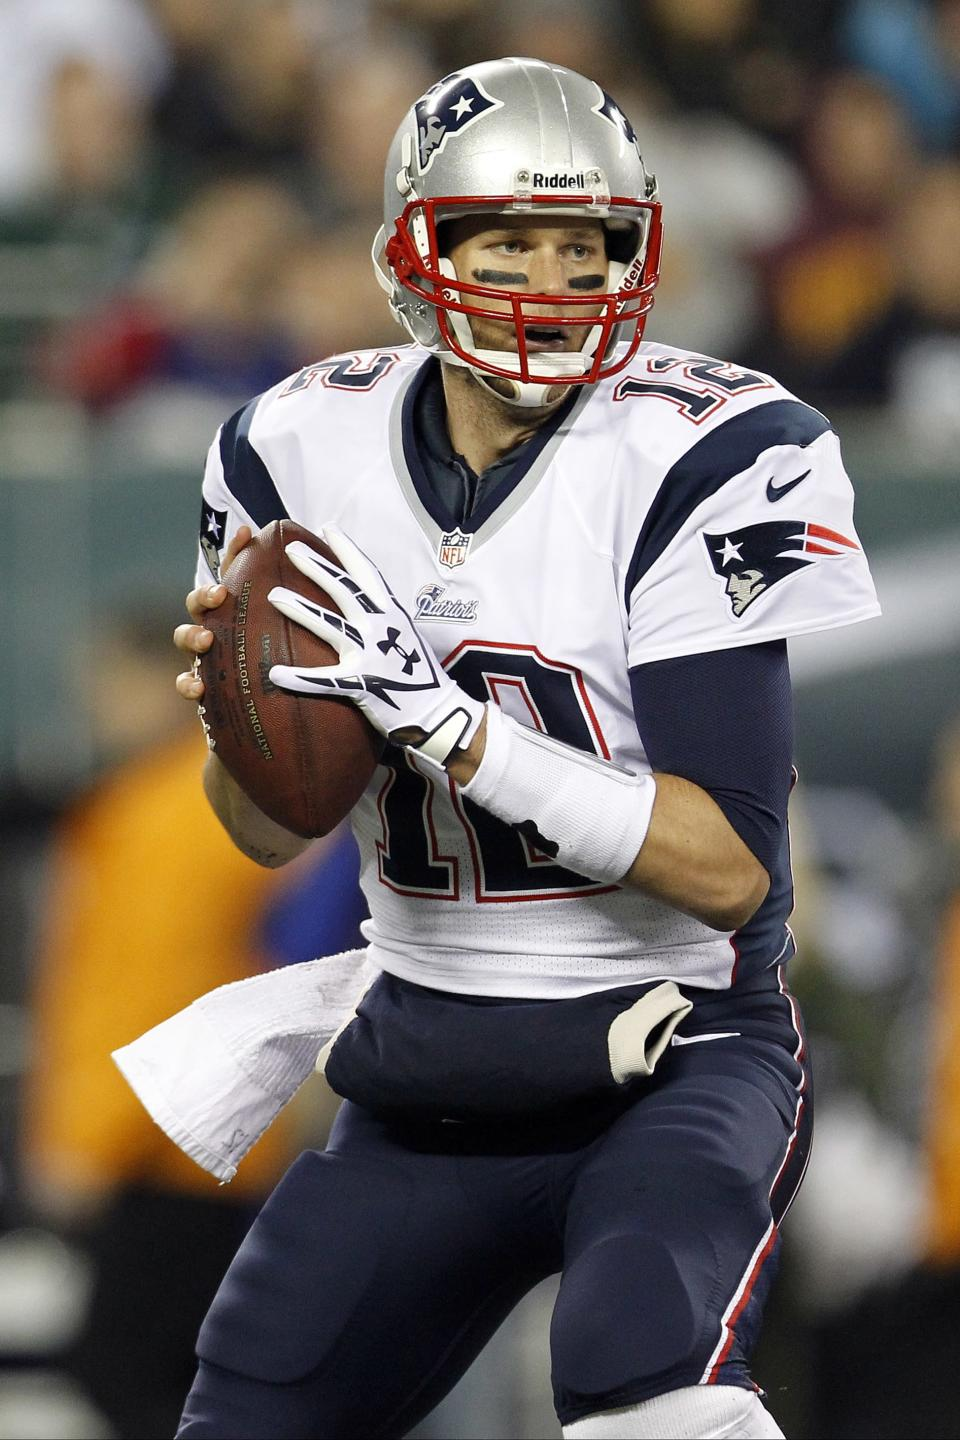 New England Patriots quarterback Tom Brady (12) looks to pass during the first half of an NFL football game against the New York Jets, Thursday, Nov. 22, 2012, in East Rutherford, N.J. (AP Photo/Julio Cortez)